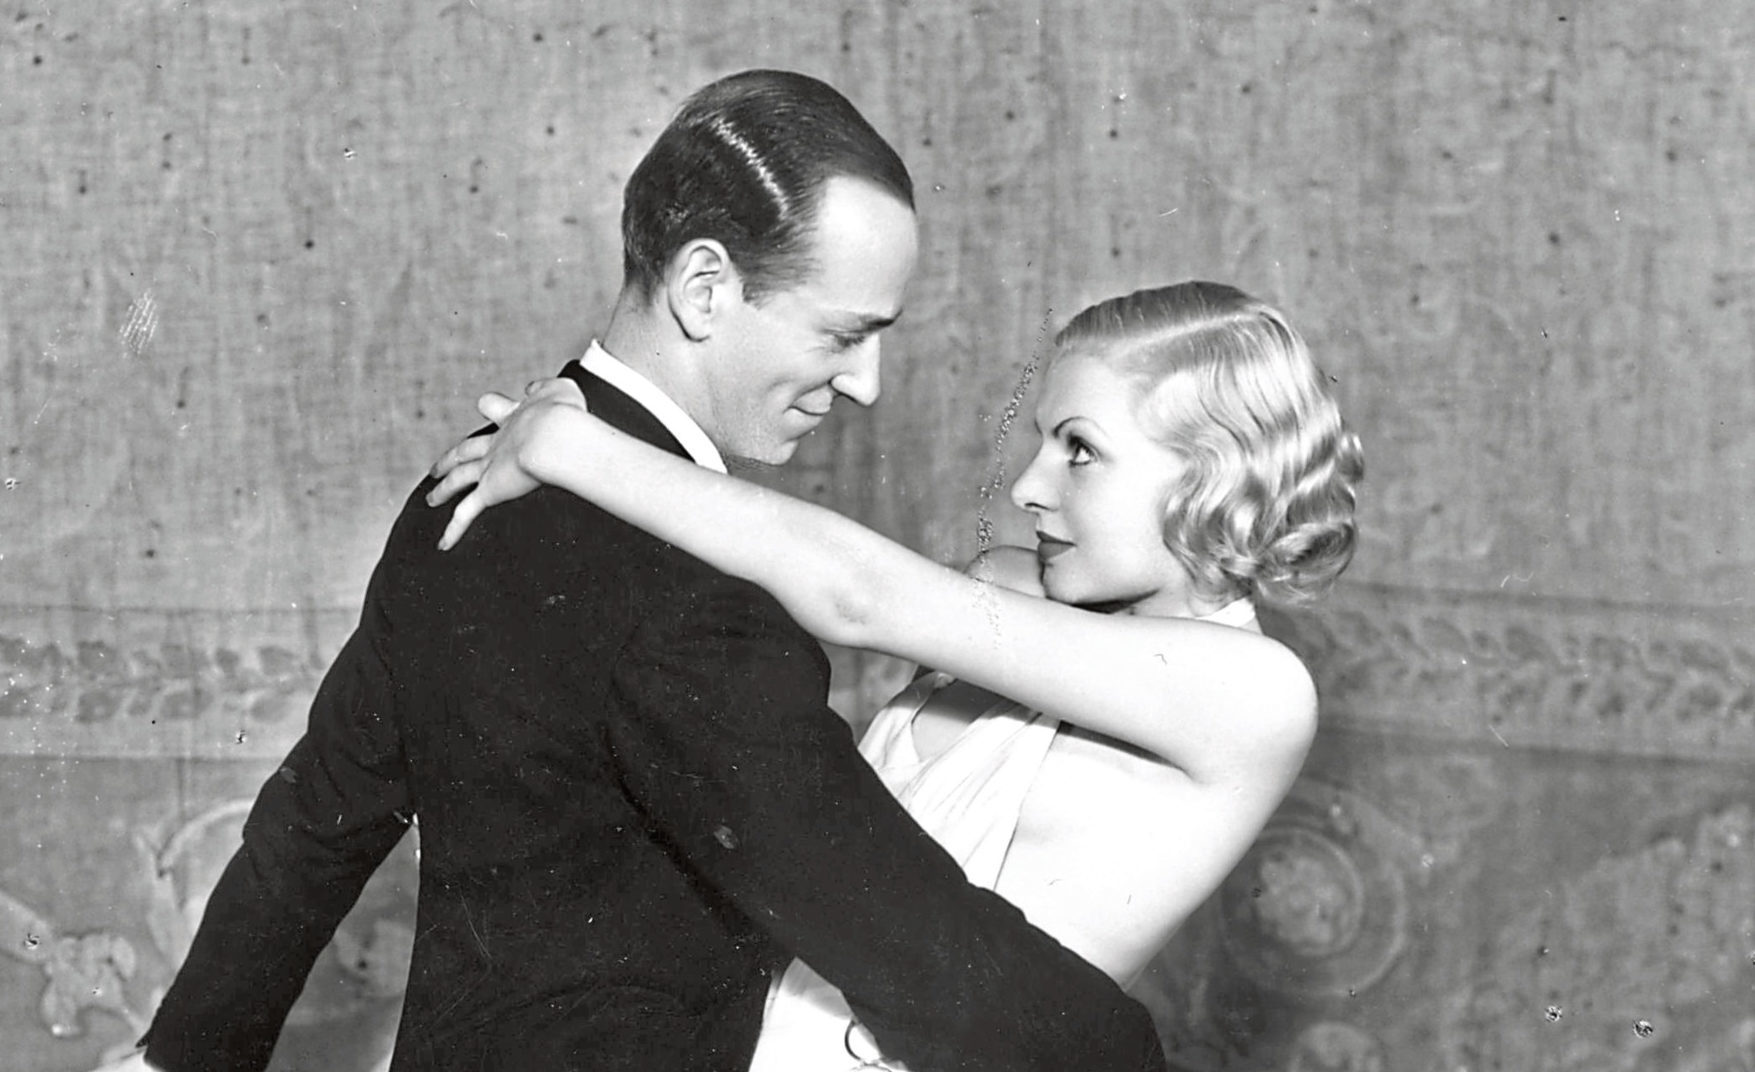 Fred Astaire cutting a rug with Claire Luce in The Gay Divorce, 1933 (Sasha/Getty Images)